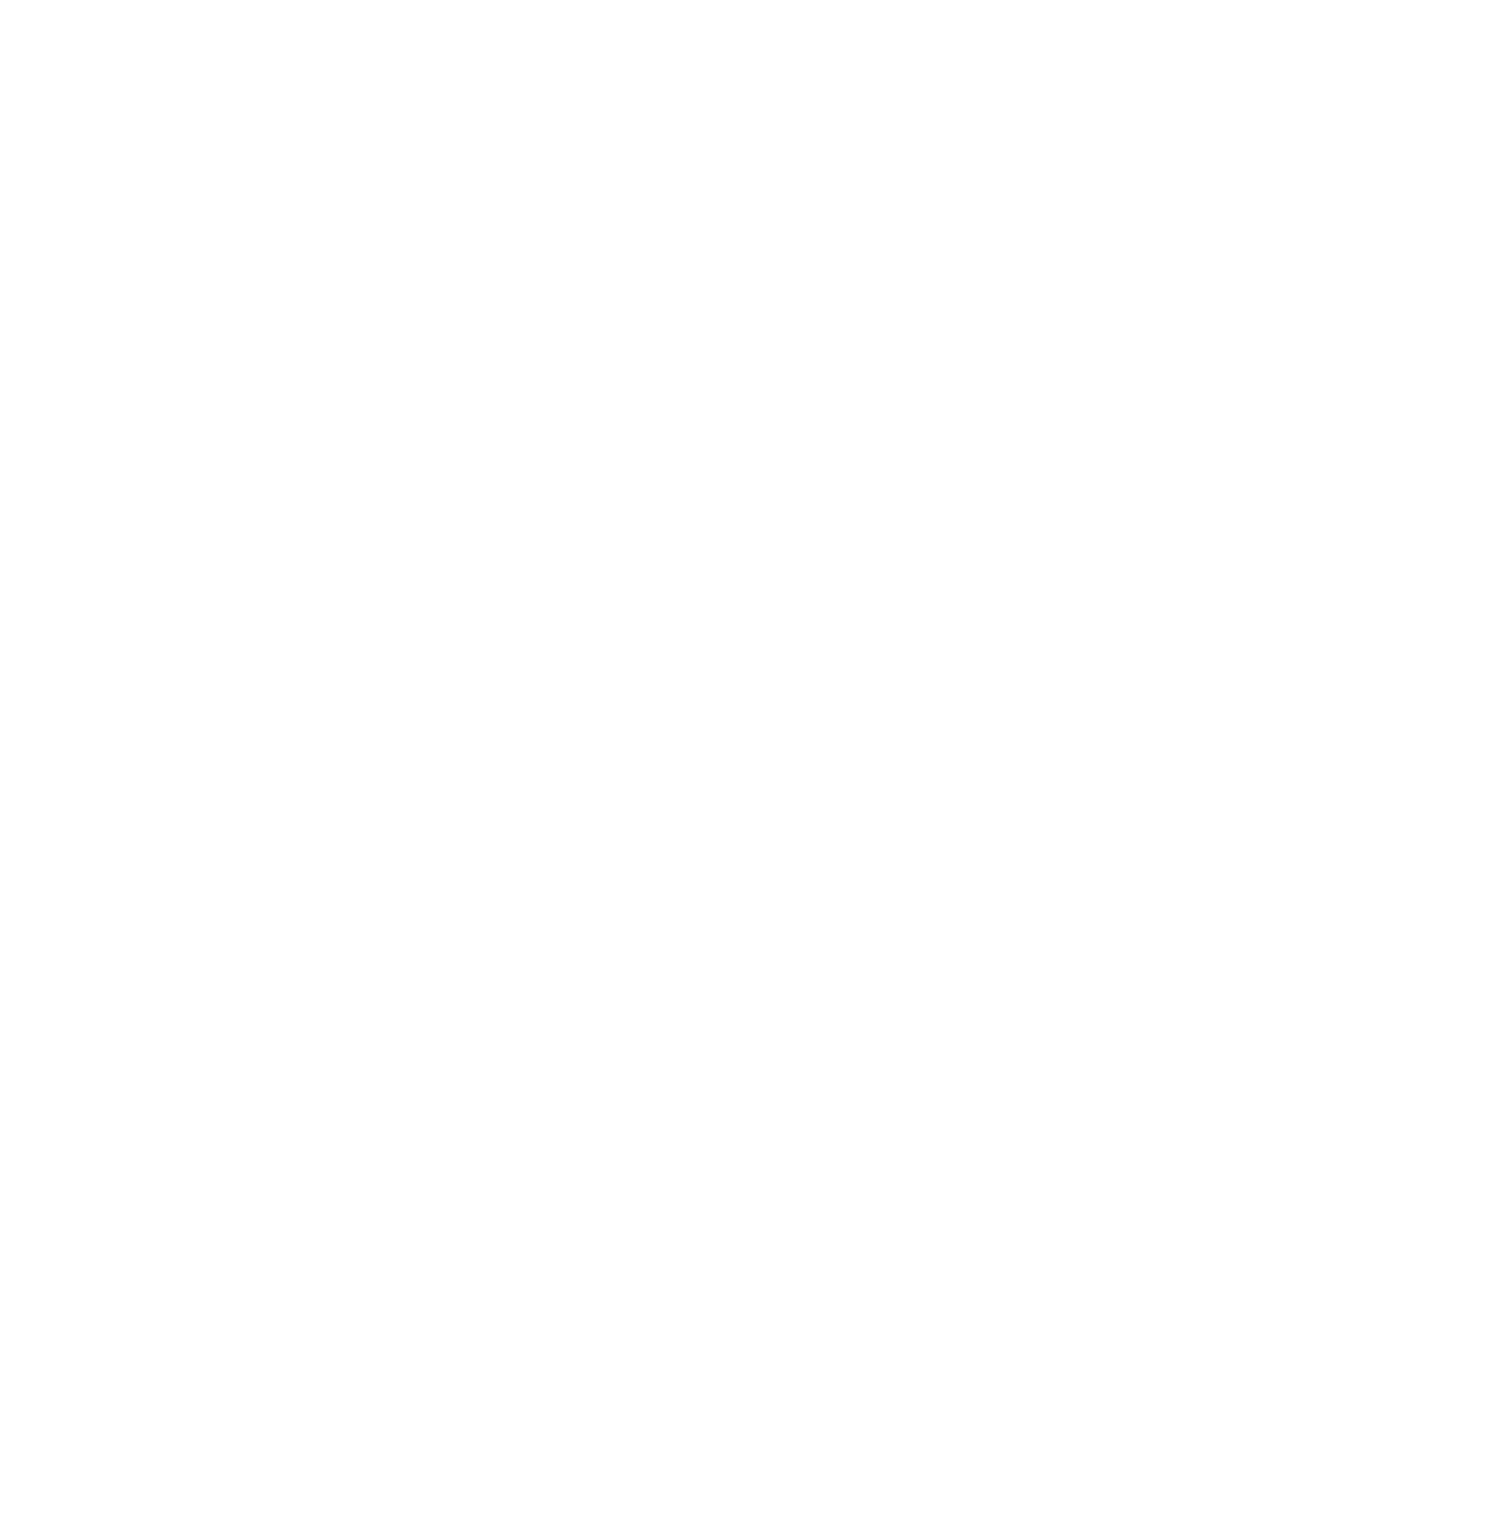 Toronto Urban Collective